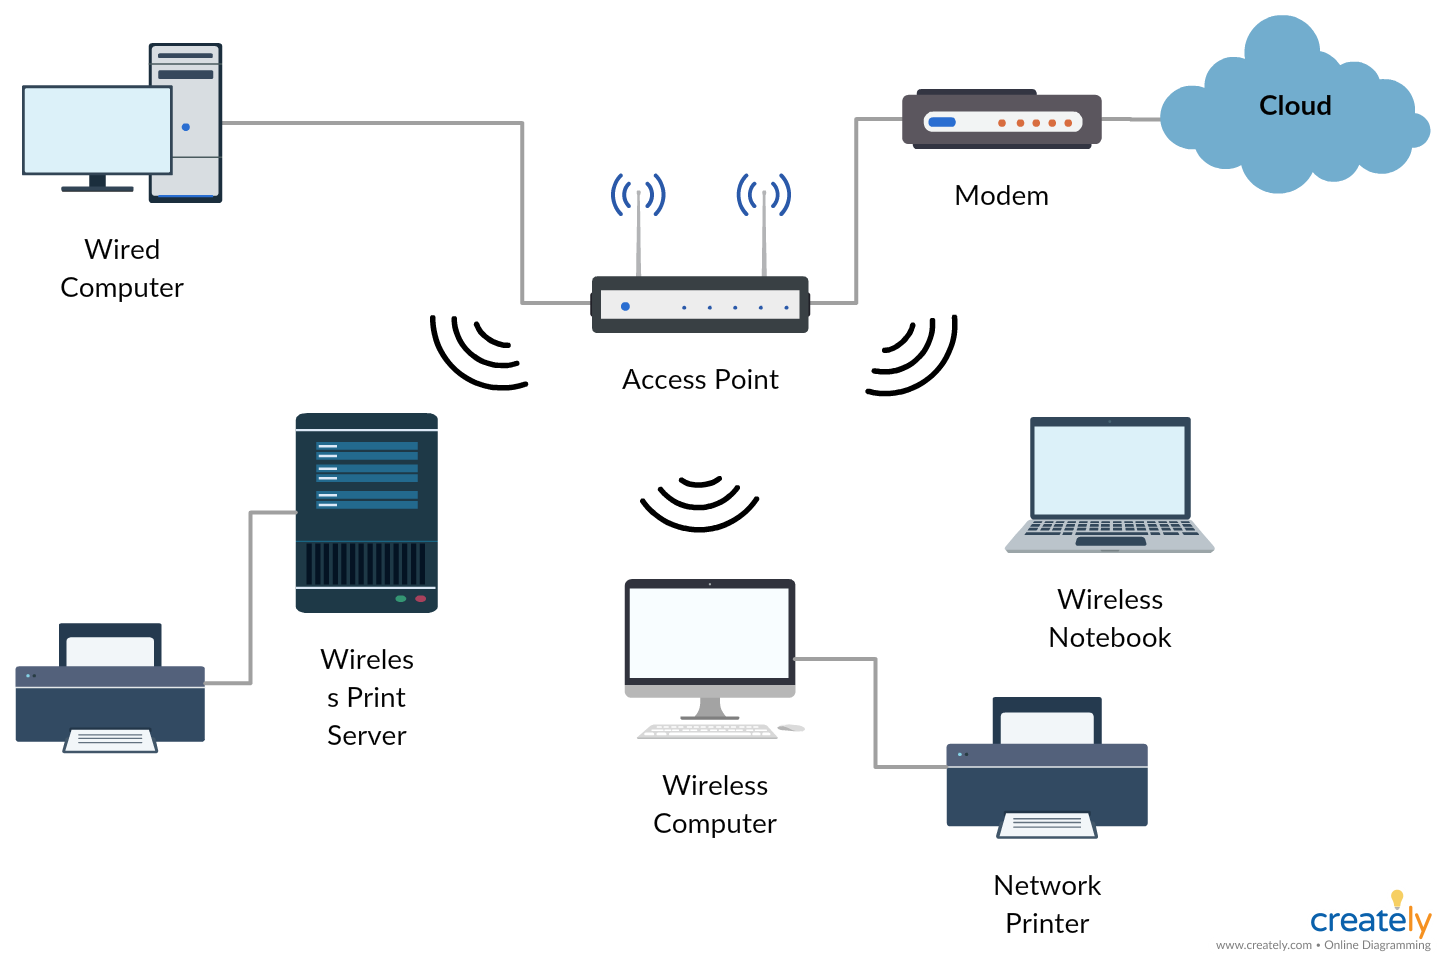 hight resolution of wireless network diagram computer room wiring diagram previewnetwork wiring diagram room wiring diagram show wireless network